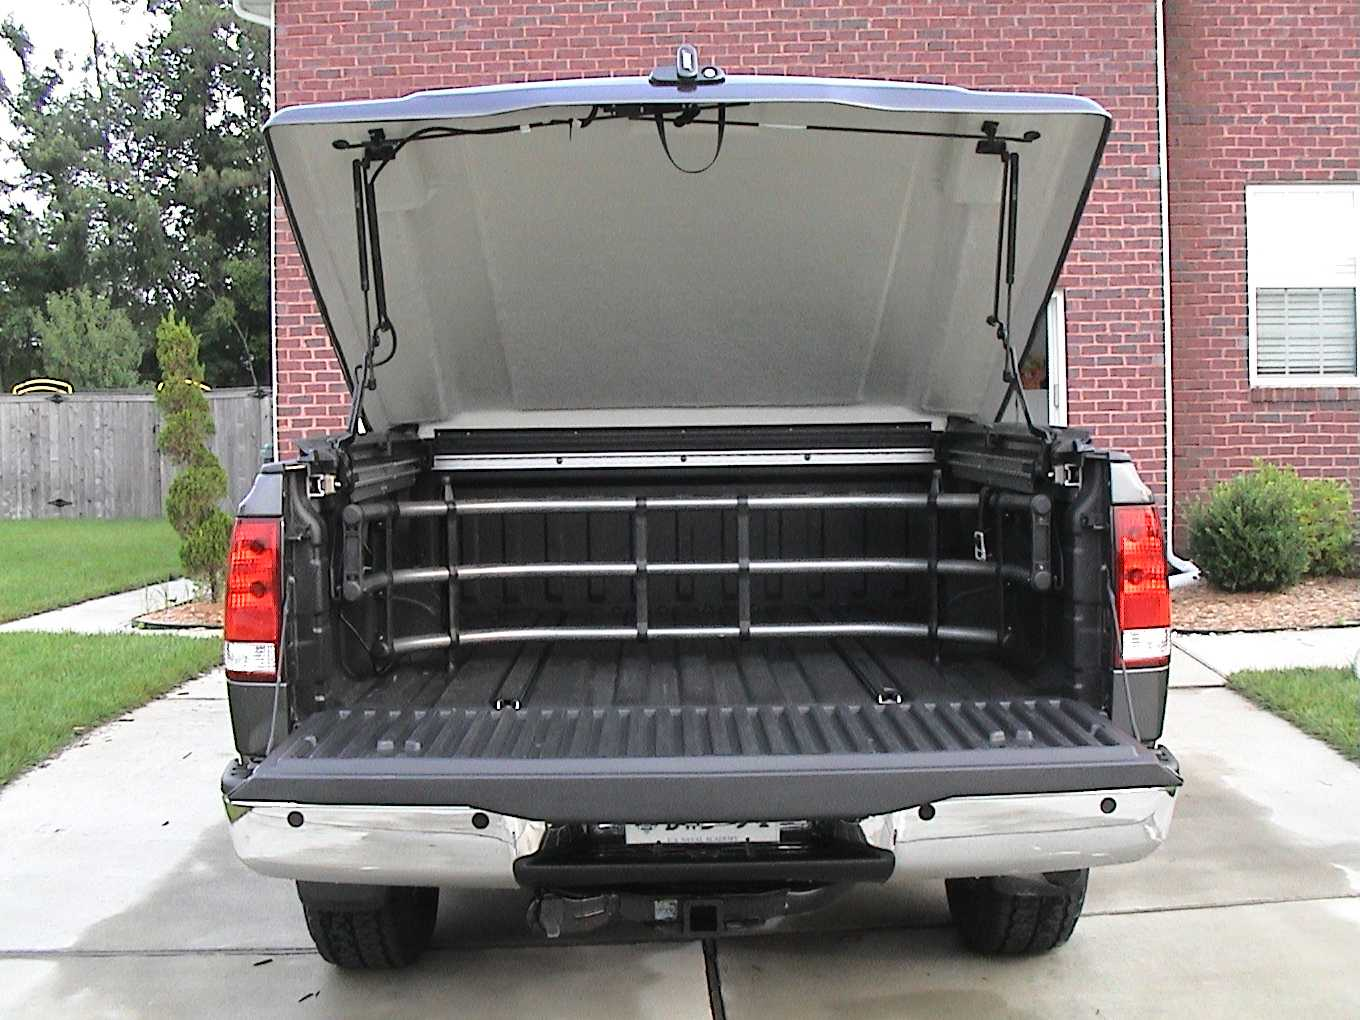 2289d1088955048 help electronic opening lsii tonneau cover titan cover3 help with electronic opening of lsii tonneau cover nissan titan  at n-0.co